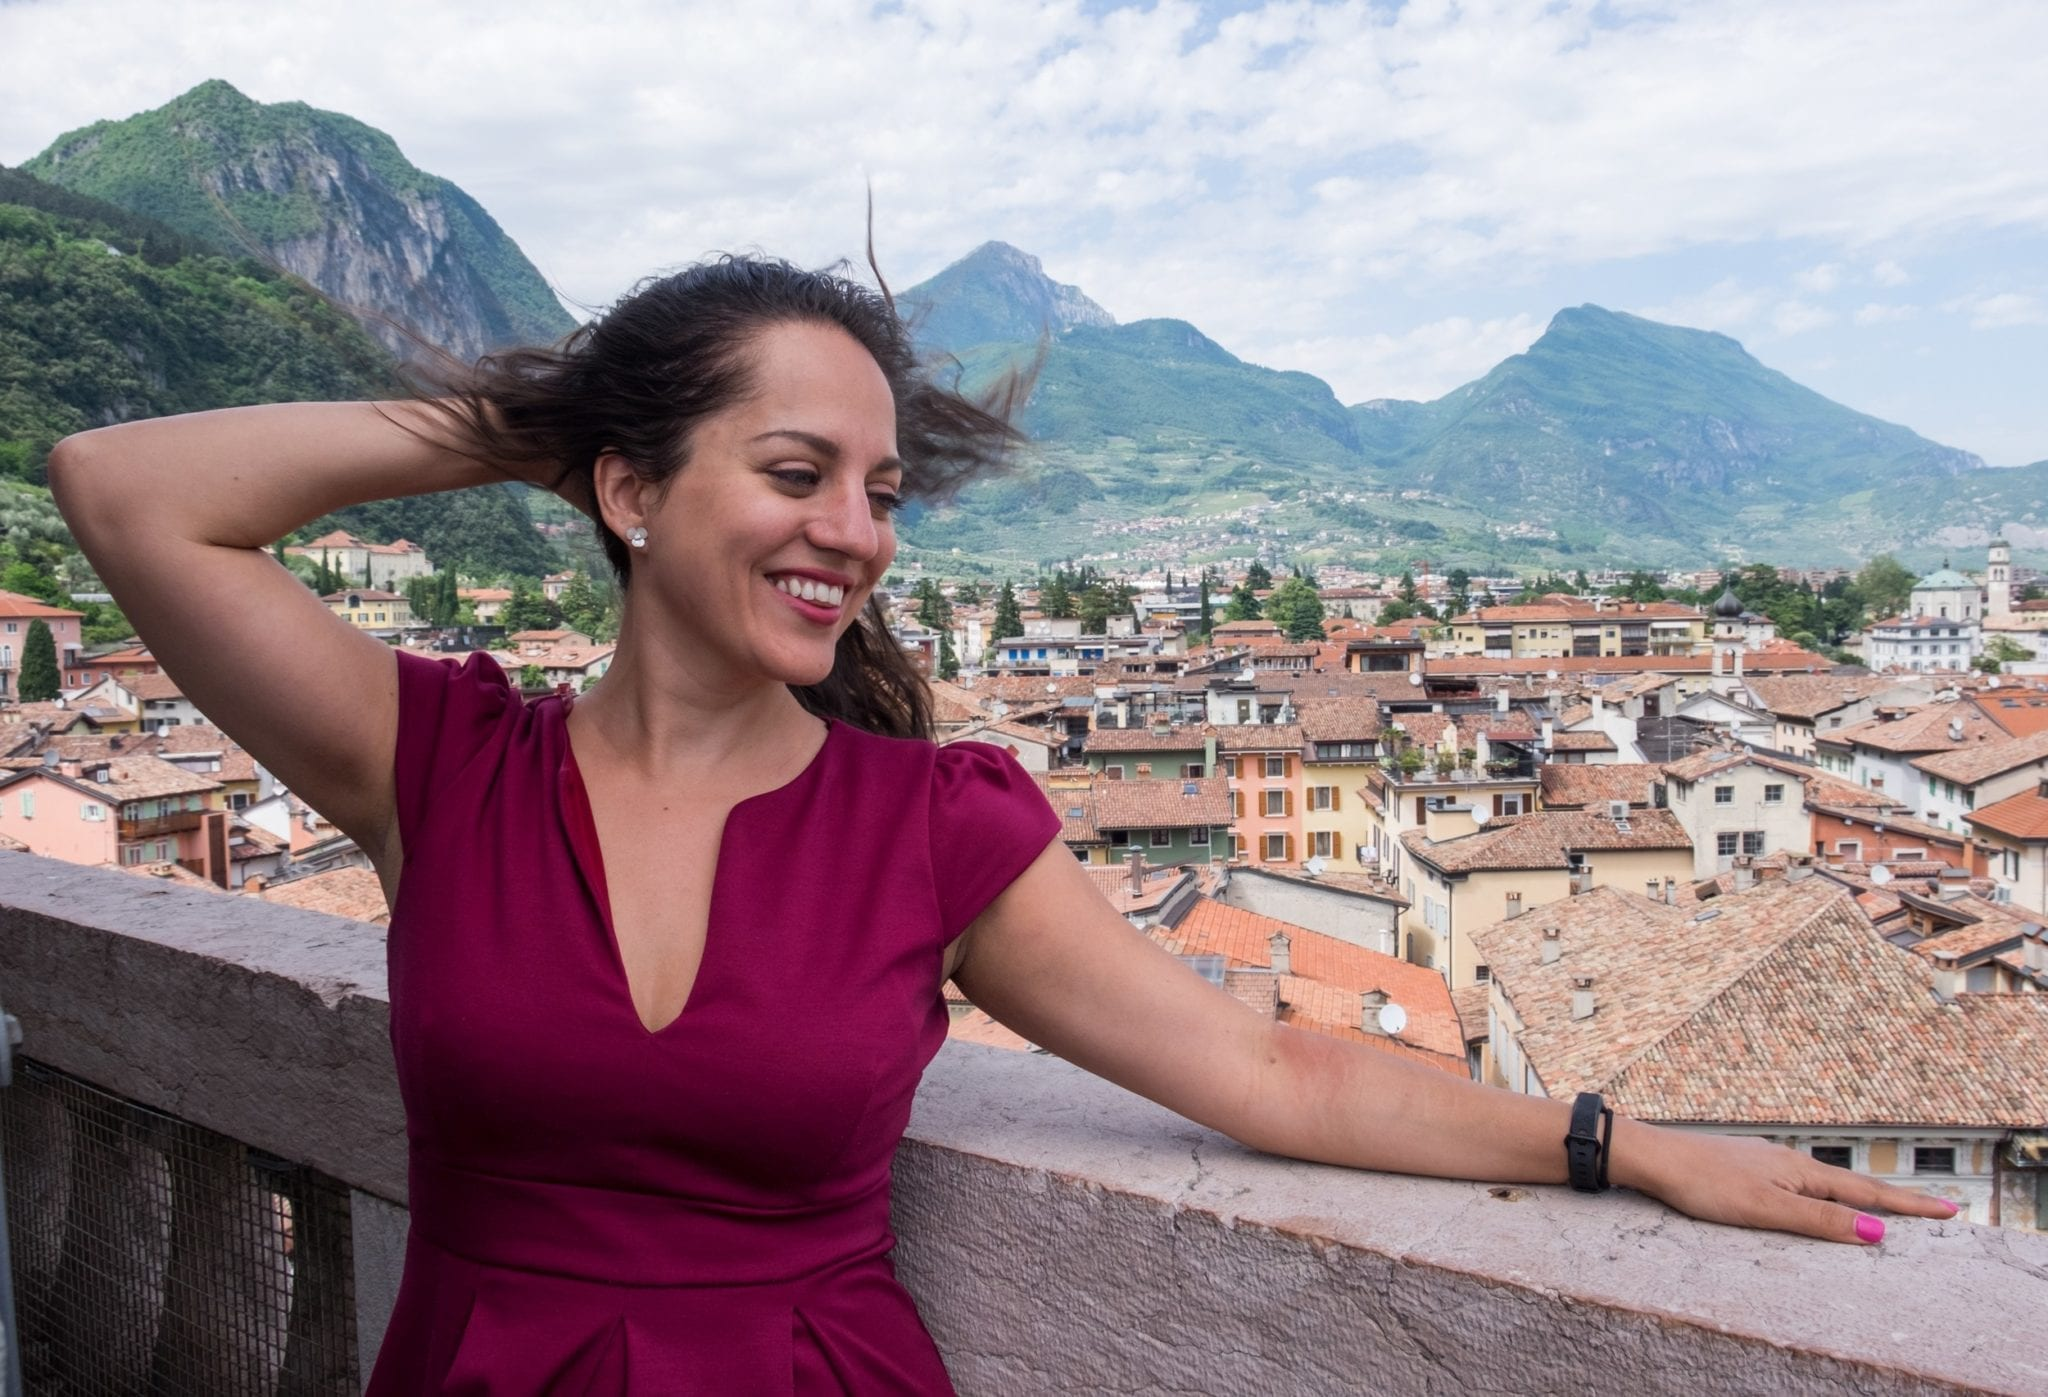 Kate smiles with her hand behind her head and wears a red dress and stands on top of a tower in Riva del Garda, Italy, overlooking terra cotta roofs, pastel buildings, with jagged mountains and a white and blue streaked sky in the background.